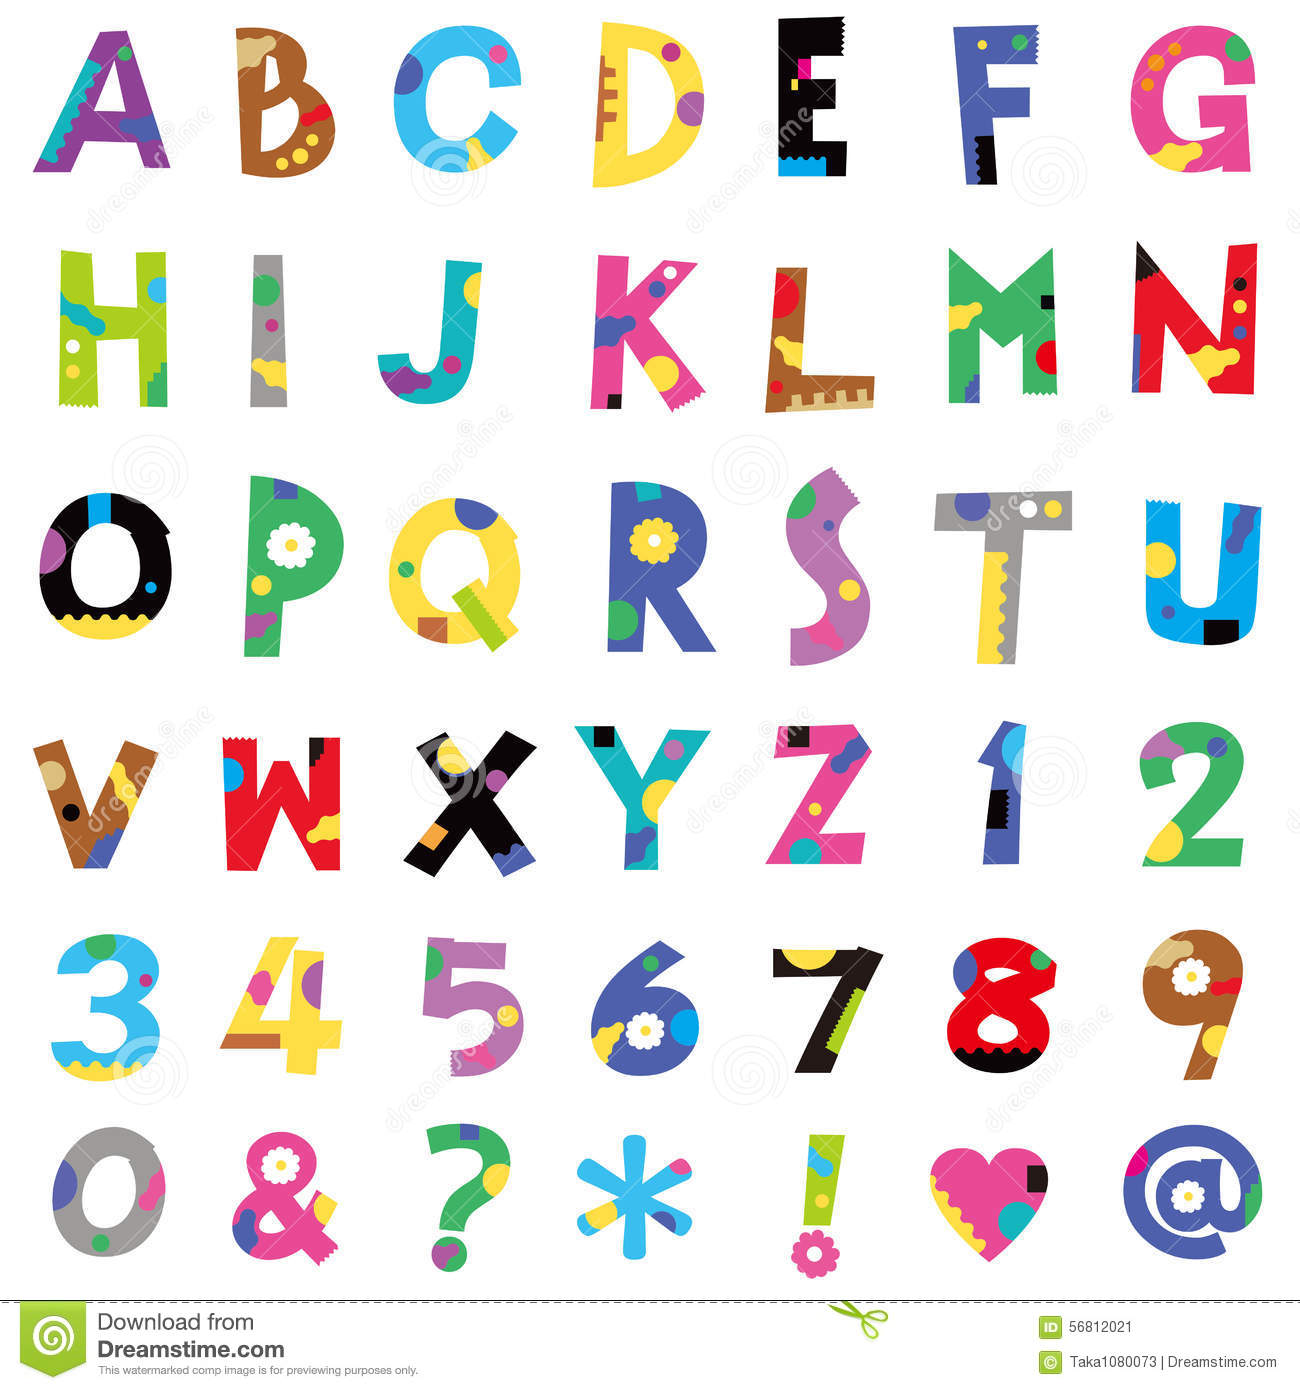 how many letters are in the alphabet how many letters in the alphabet levelings 22172 | alphabet many pleasant letters numbers 56812021